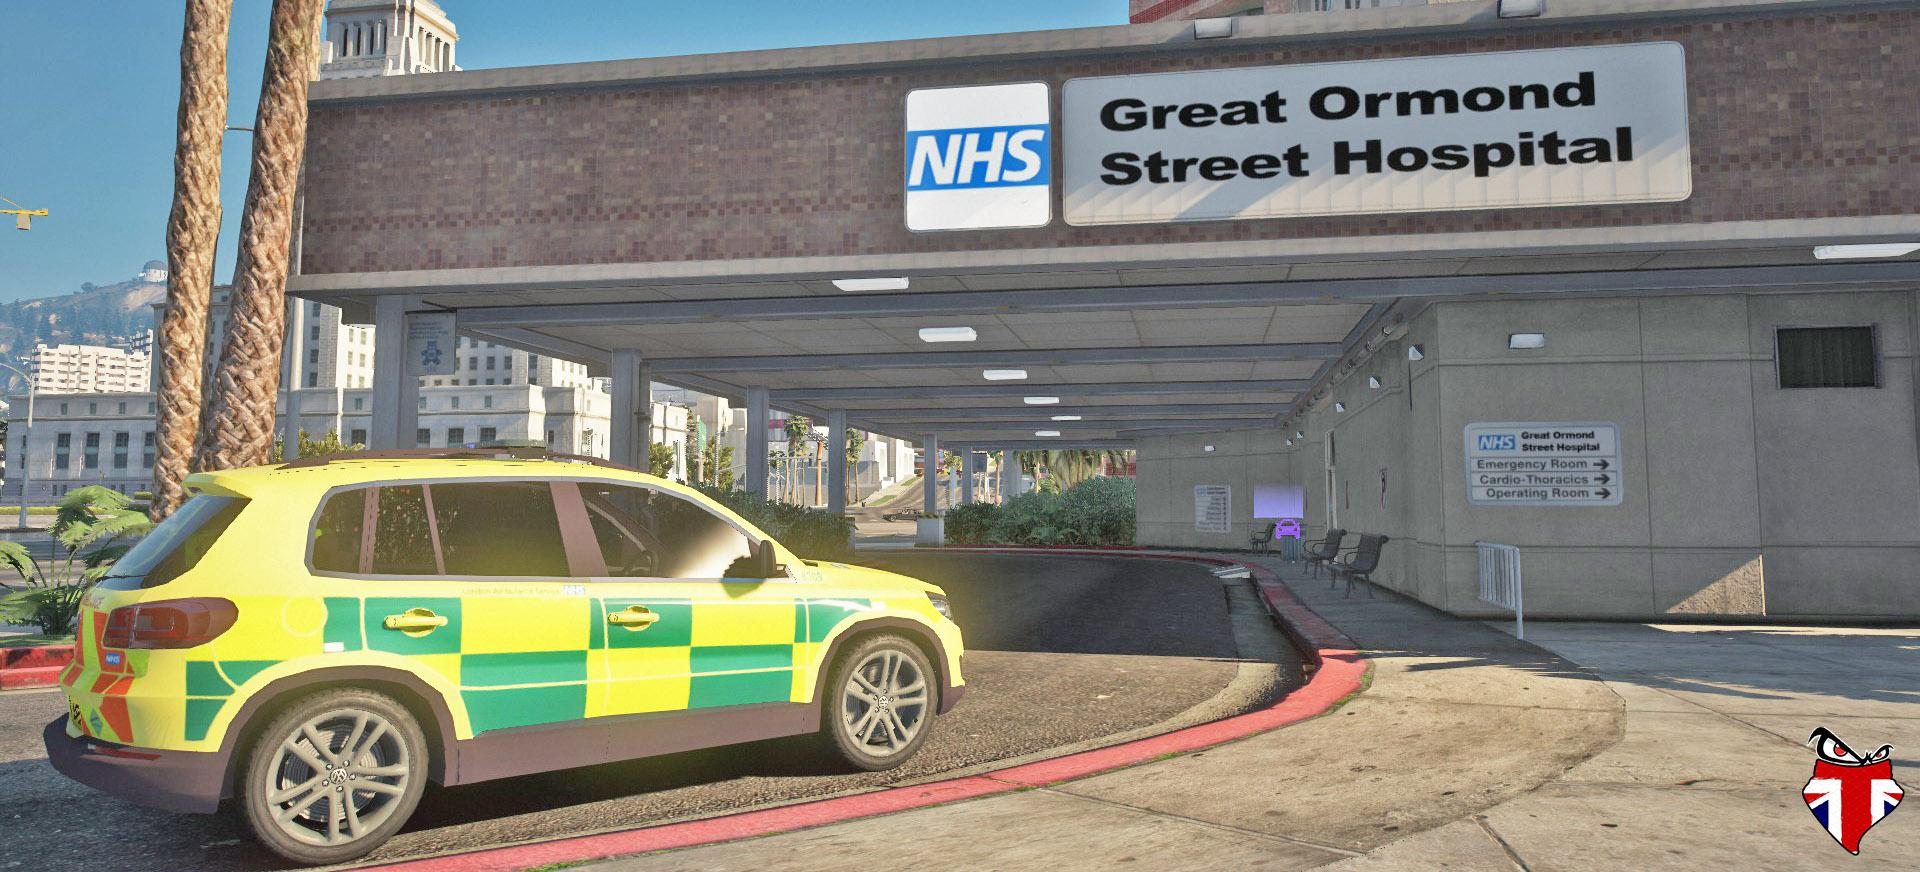 Great Ormond Street Hospital TEXTURE Releases